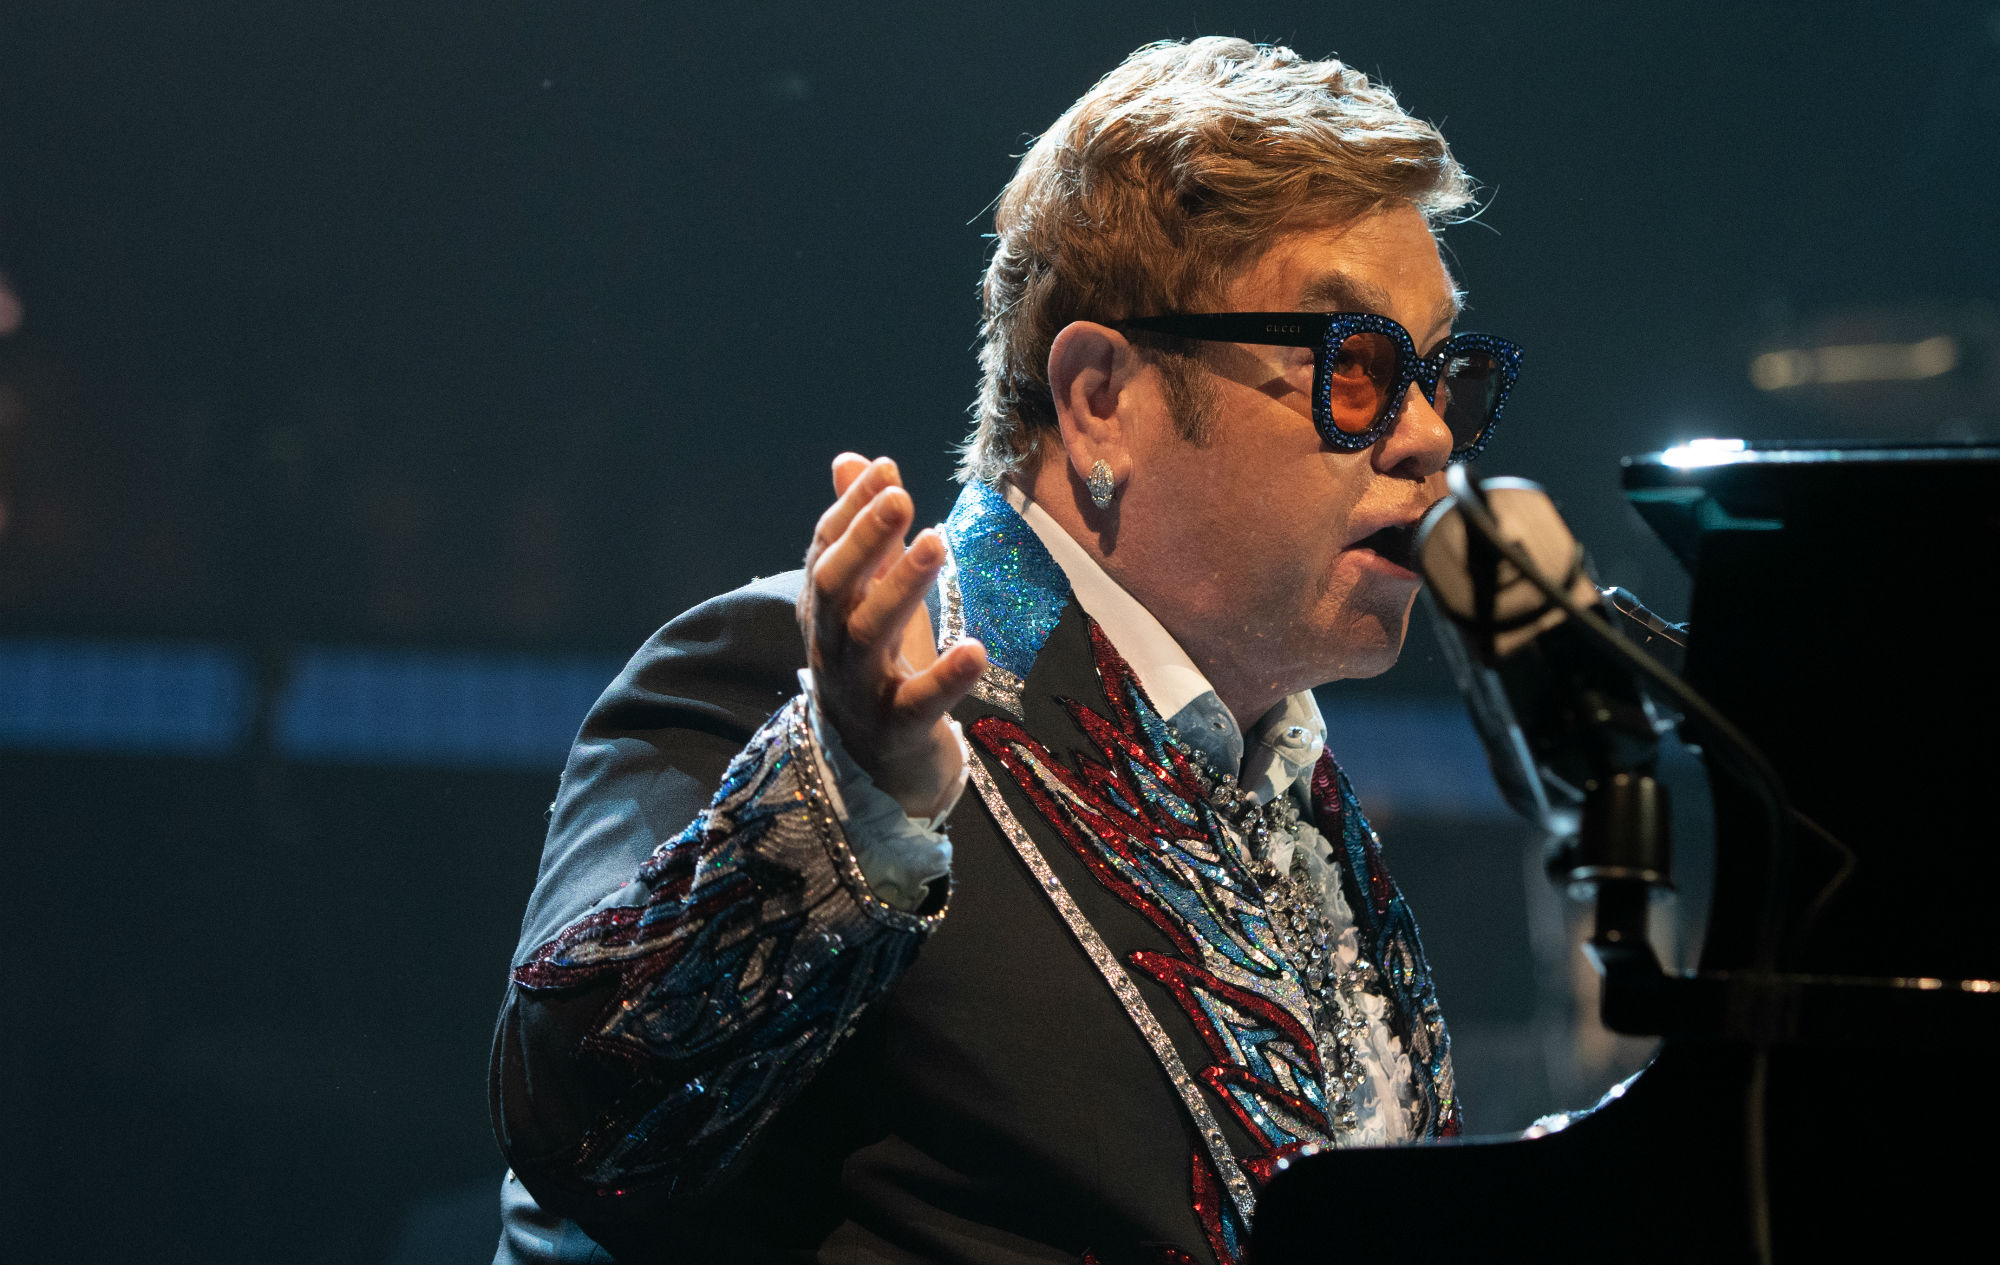 Elton John feared he wouldn't be able to perform sober after addiction treatment